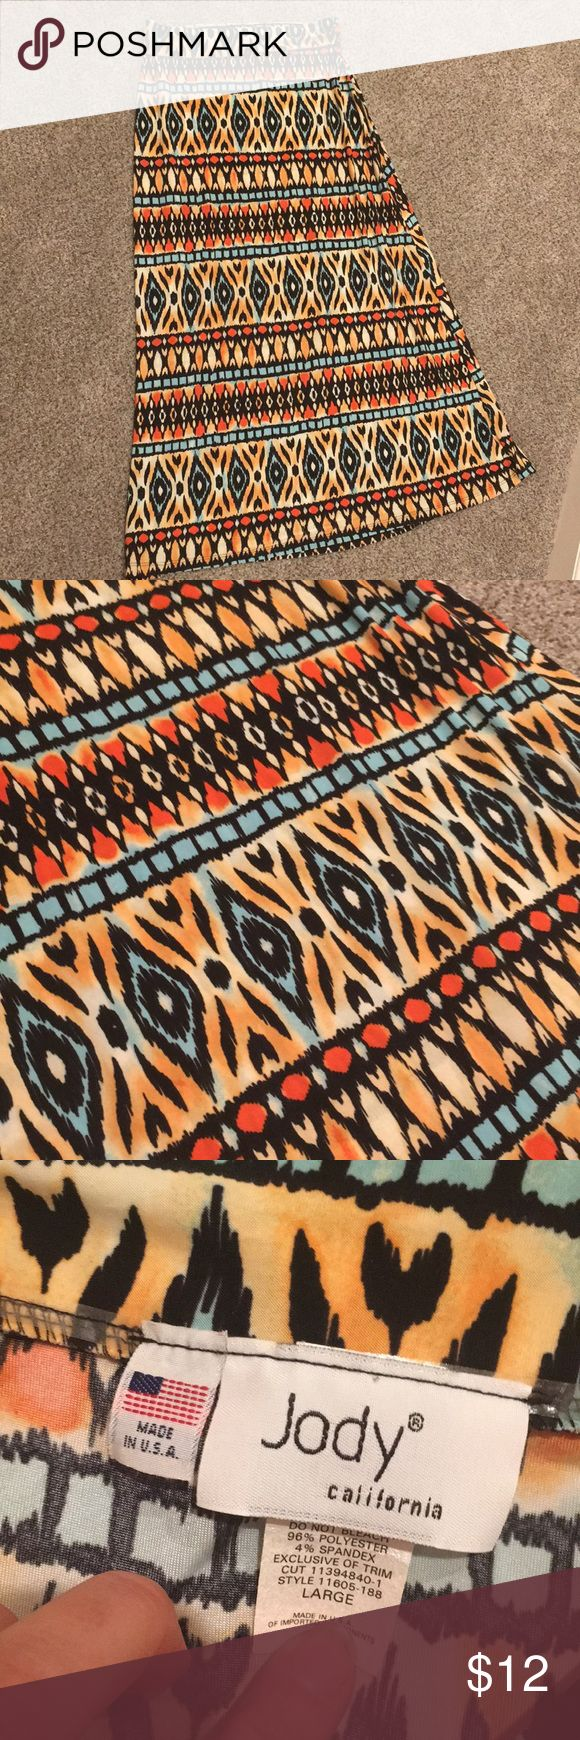 Tribal maxi skirt size large Adorable tribal print maxi skirt size large. Smoke free clean home fold over waist band lots of stretch excellent condition. 40 inches in length Jody Skirts Maxi